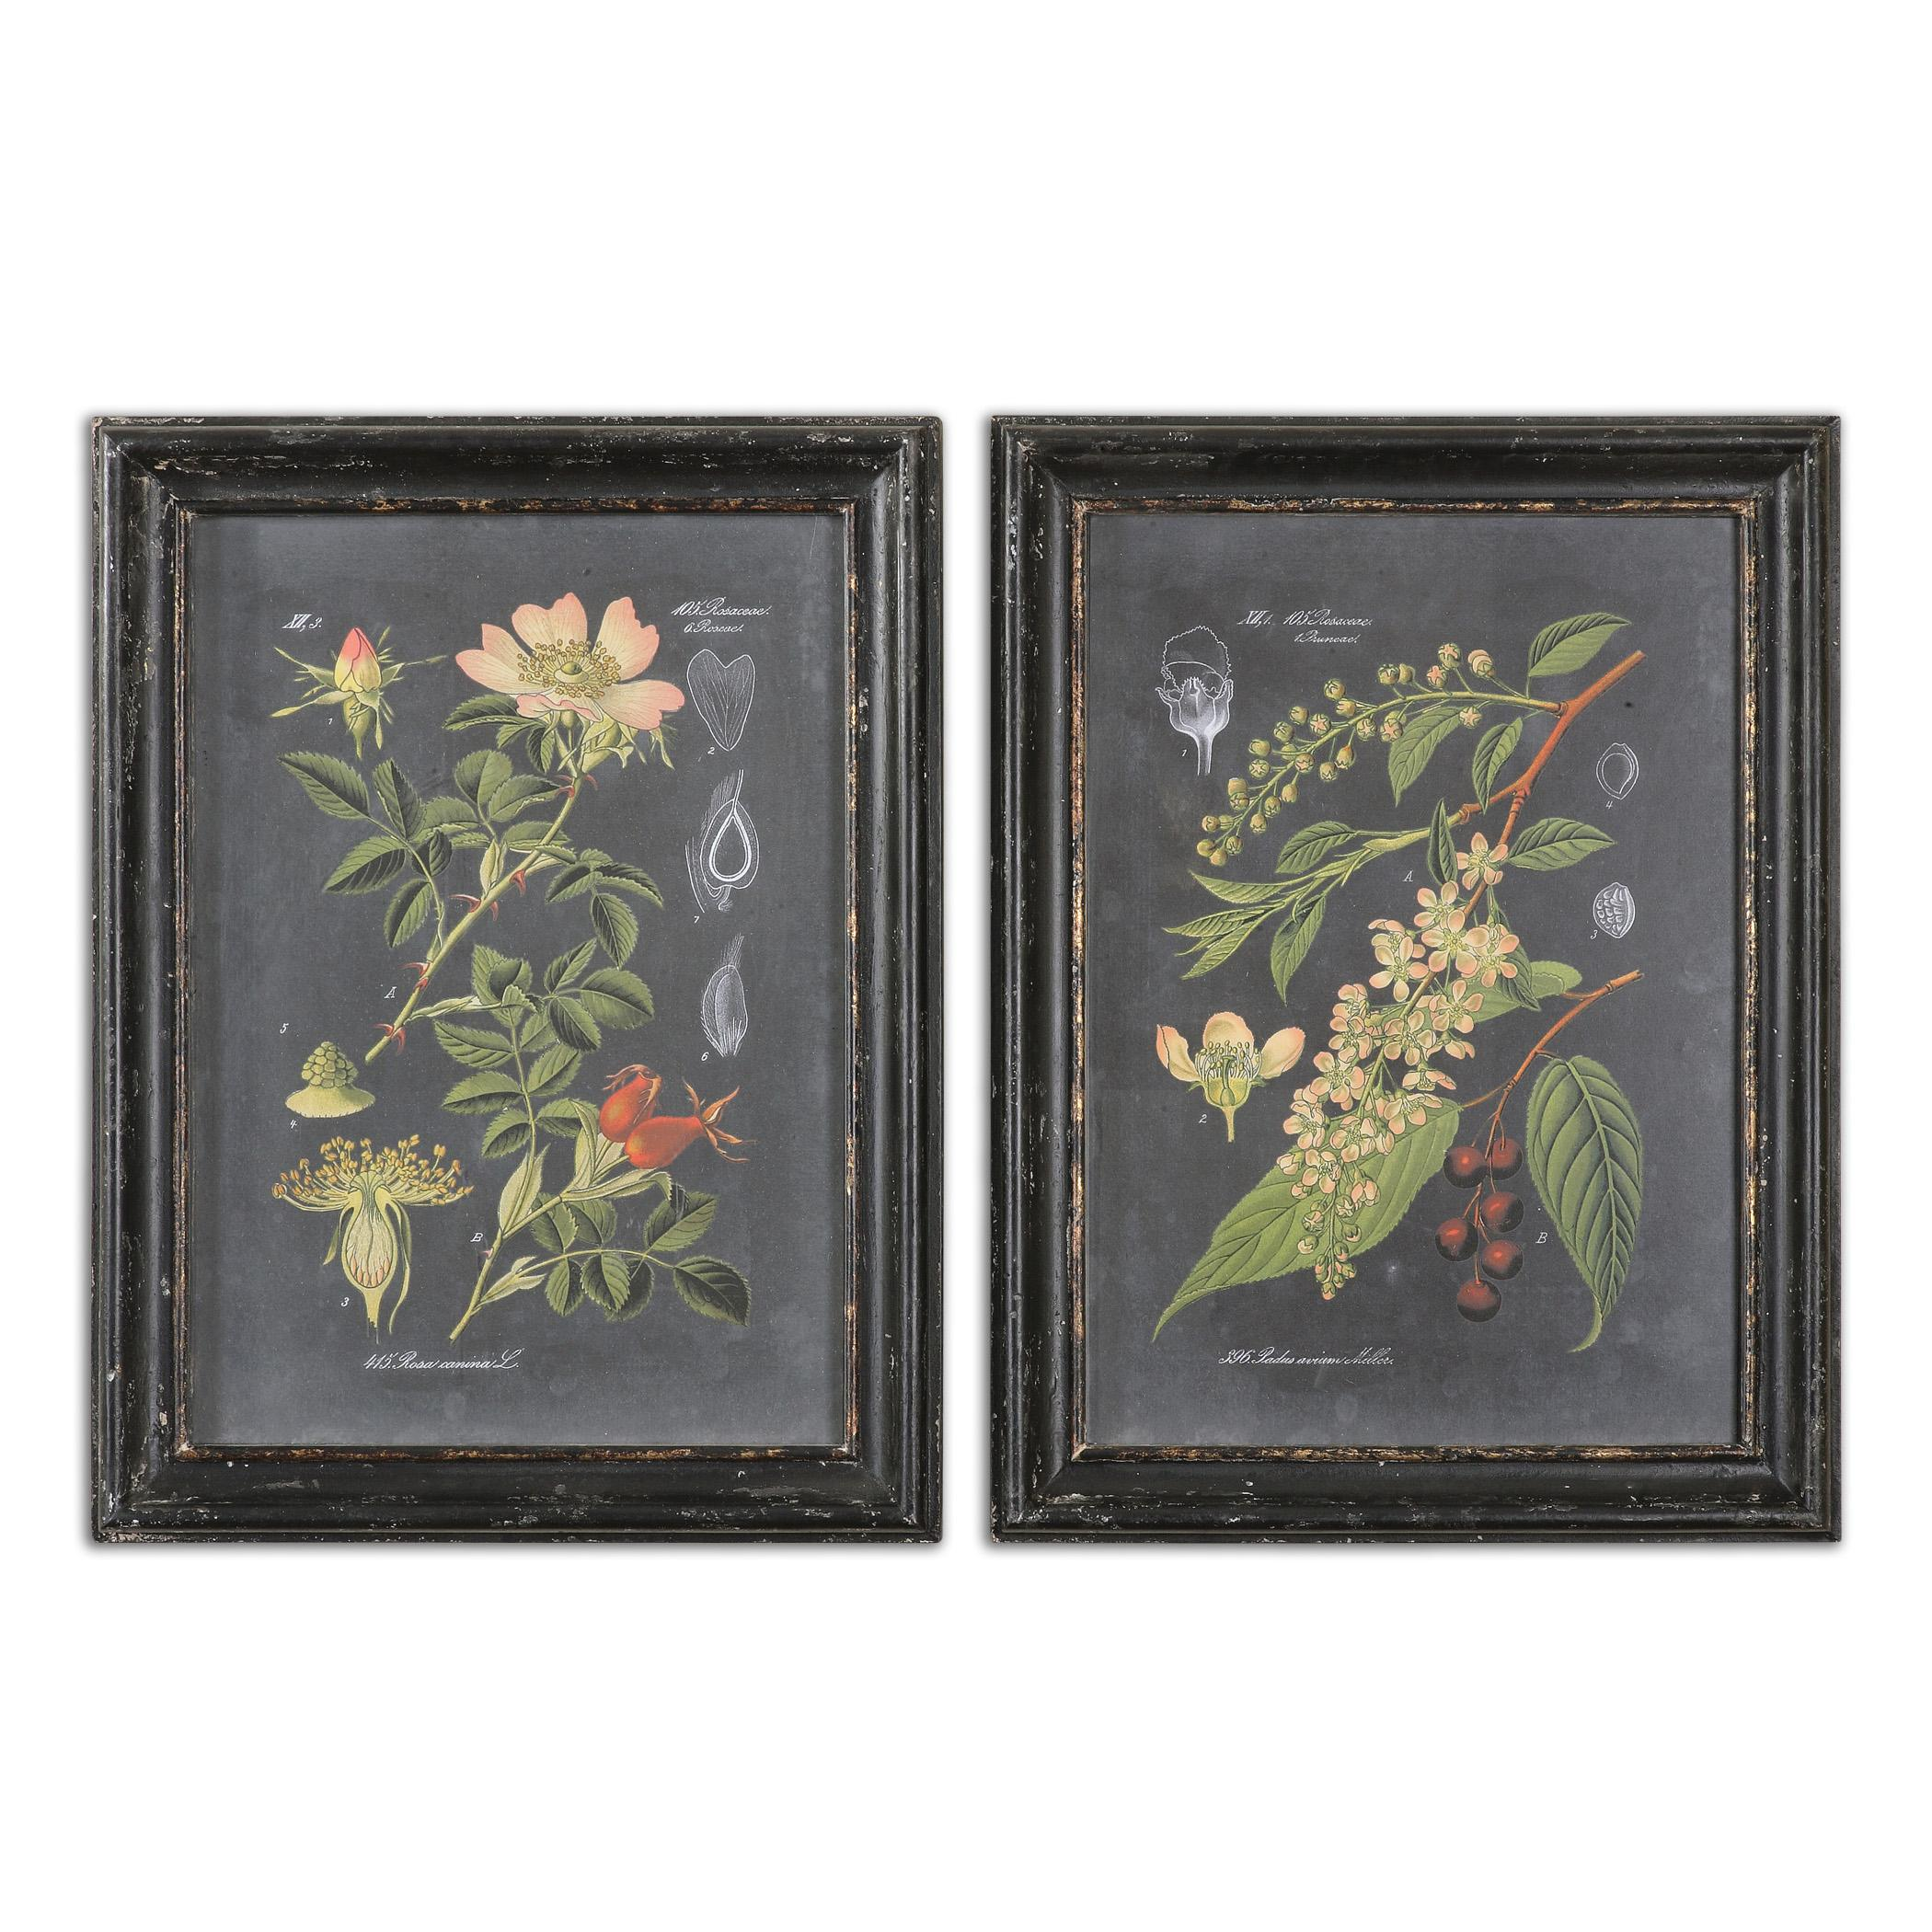 Uttermost Art Midnight Botanicals Wall Art Set of 2 - Item Number: 56053